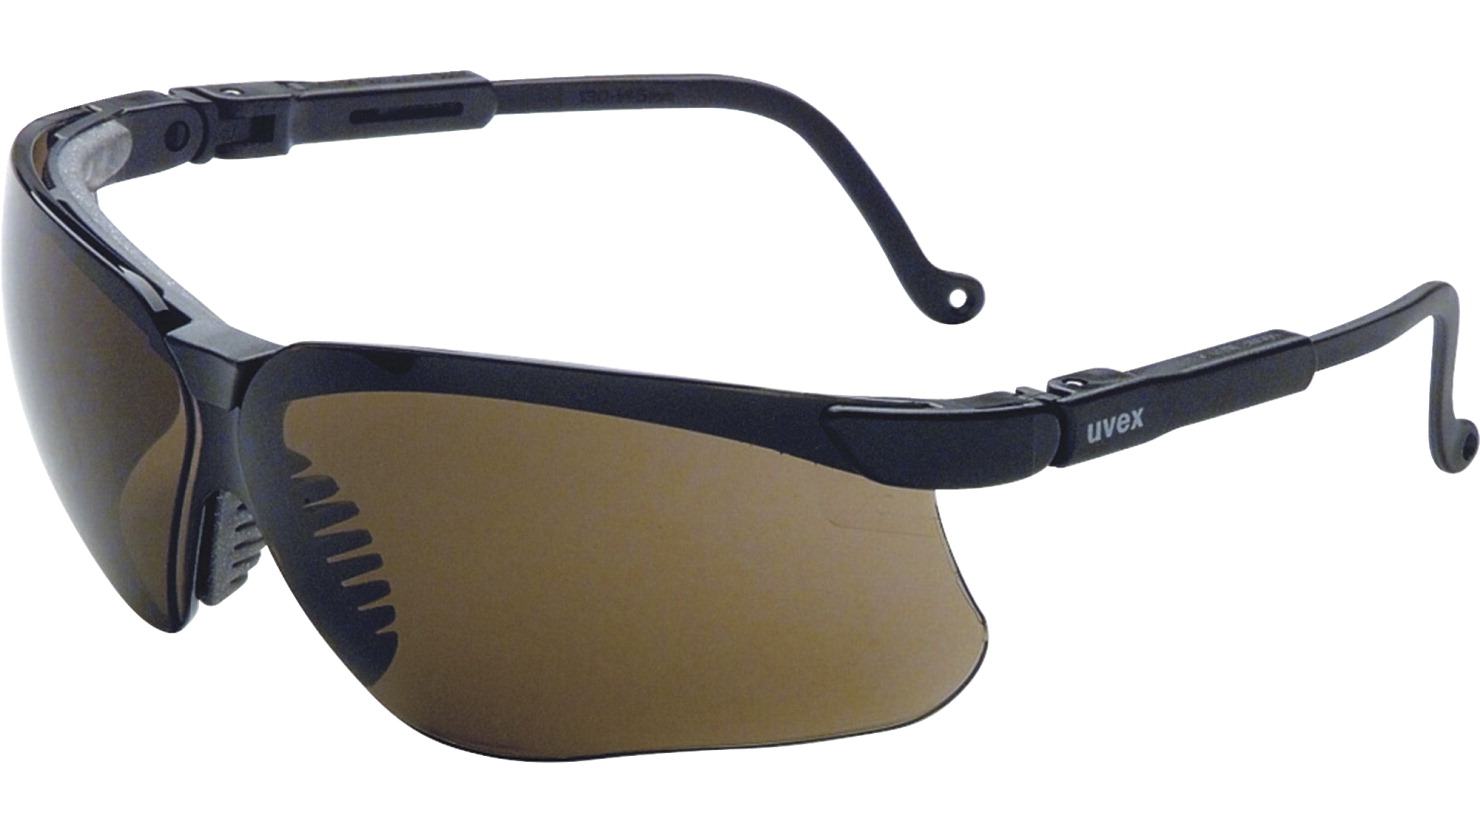 R3 Safety Genesis 9-Base Wraparound Lens Safety Glasses, Black/Expresso